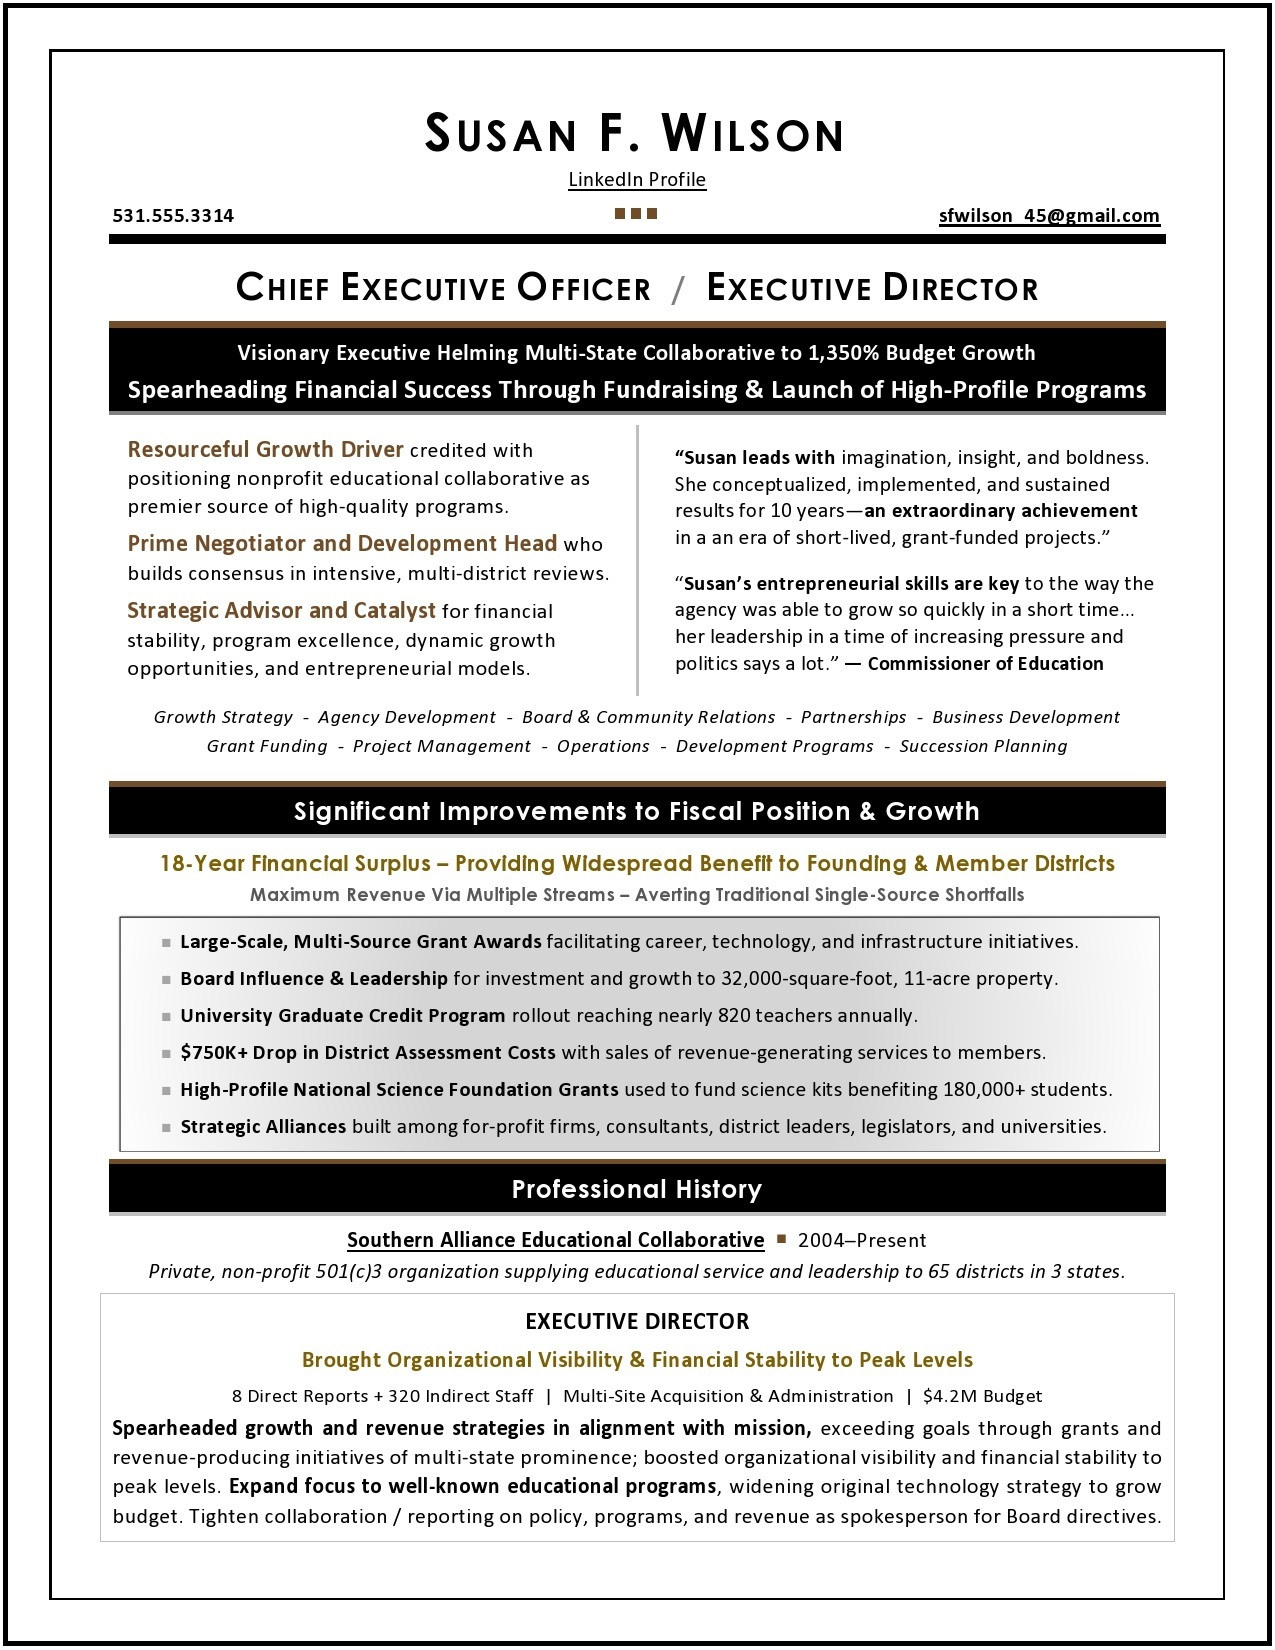 Sample Cover Letter, EVP Distribution | Executive Resume Writer